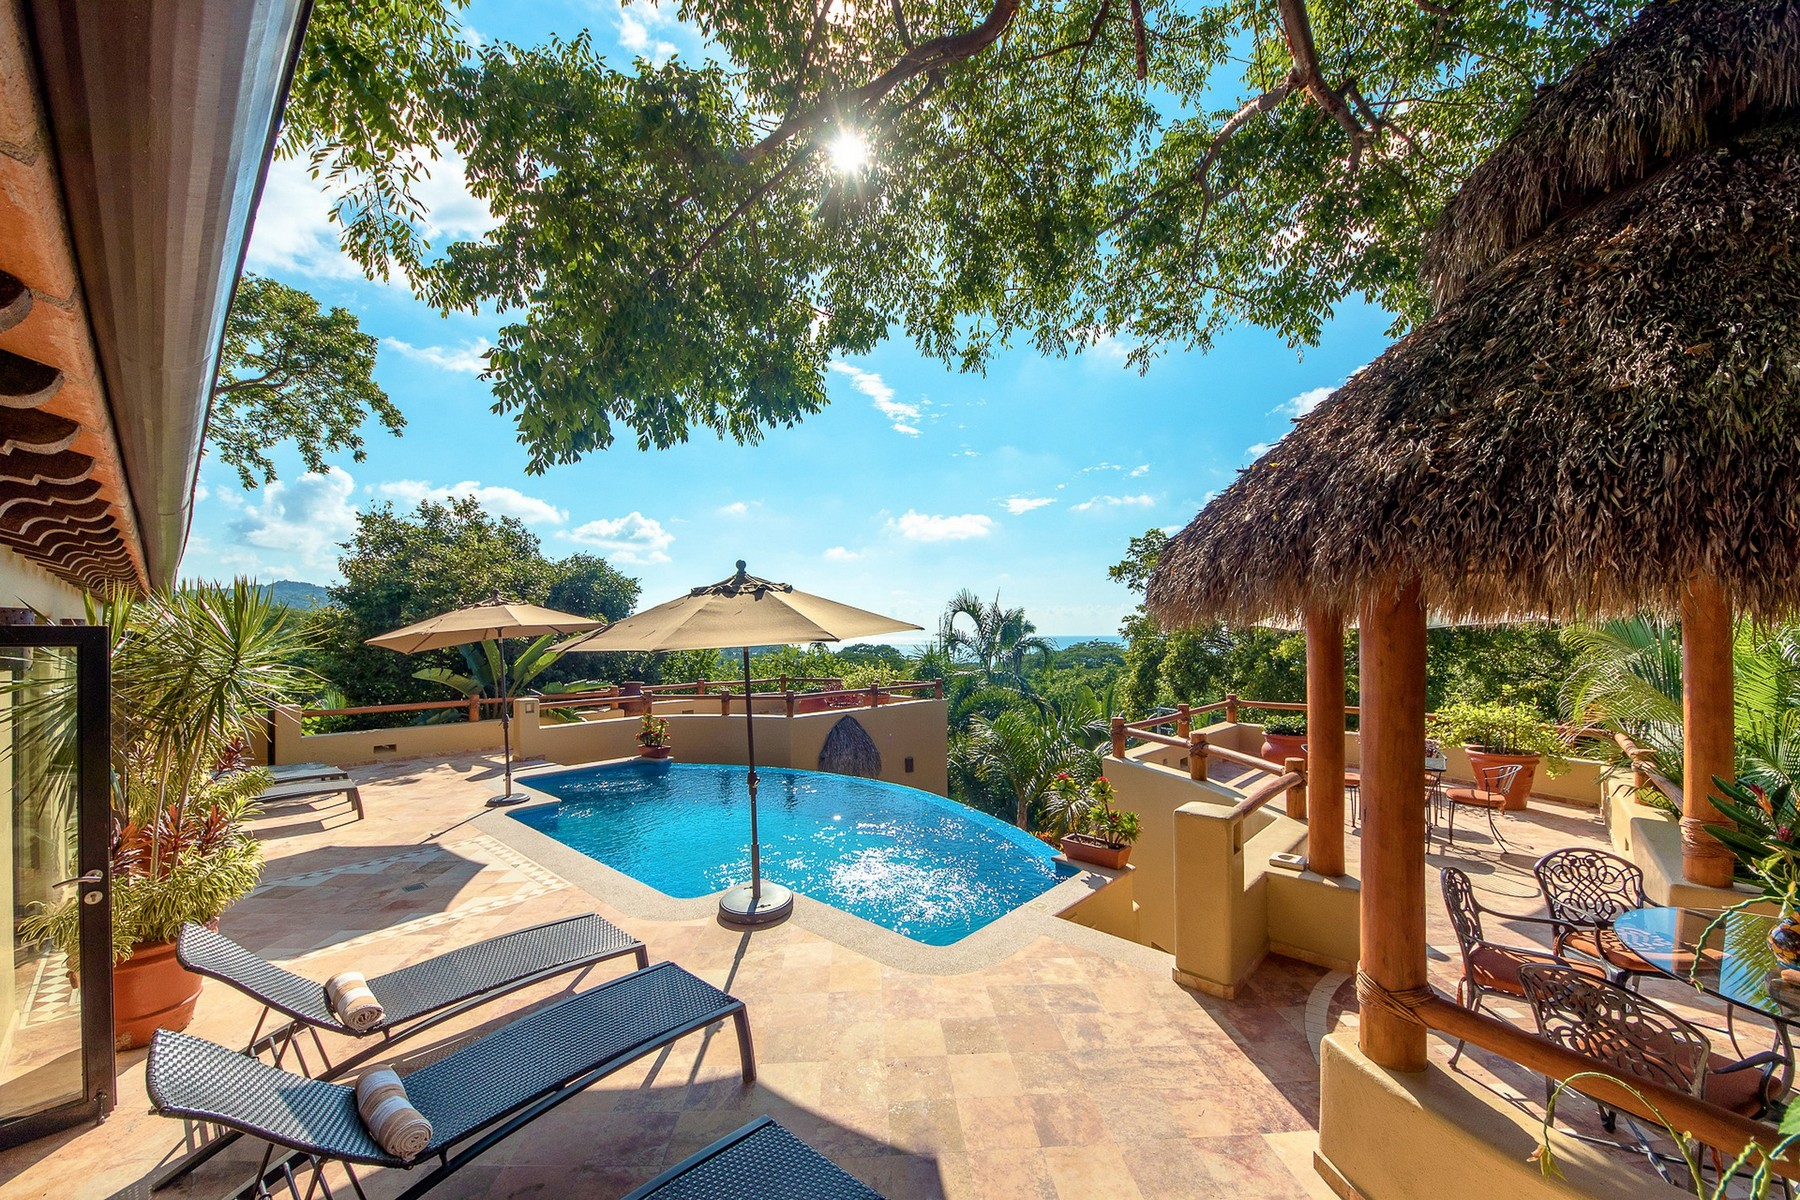 Additional photo for property listing at Casa Sweet Water, San Pancho Nayarit Calle Africa 556 Other Nayarit, Nayarit 63729 México